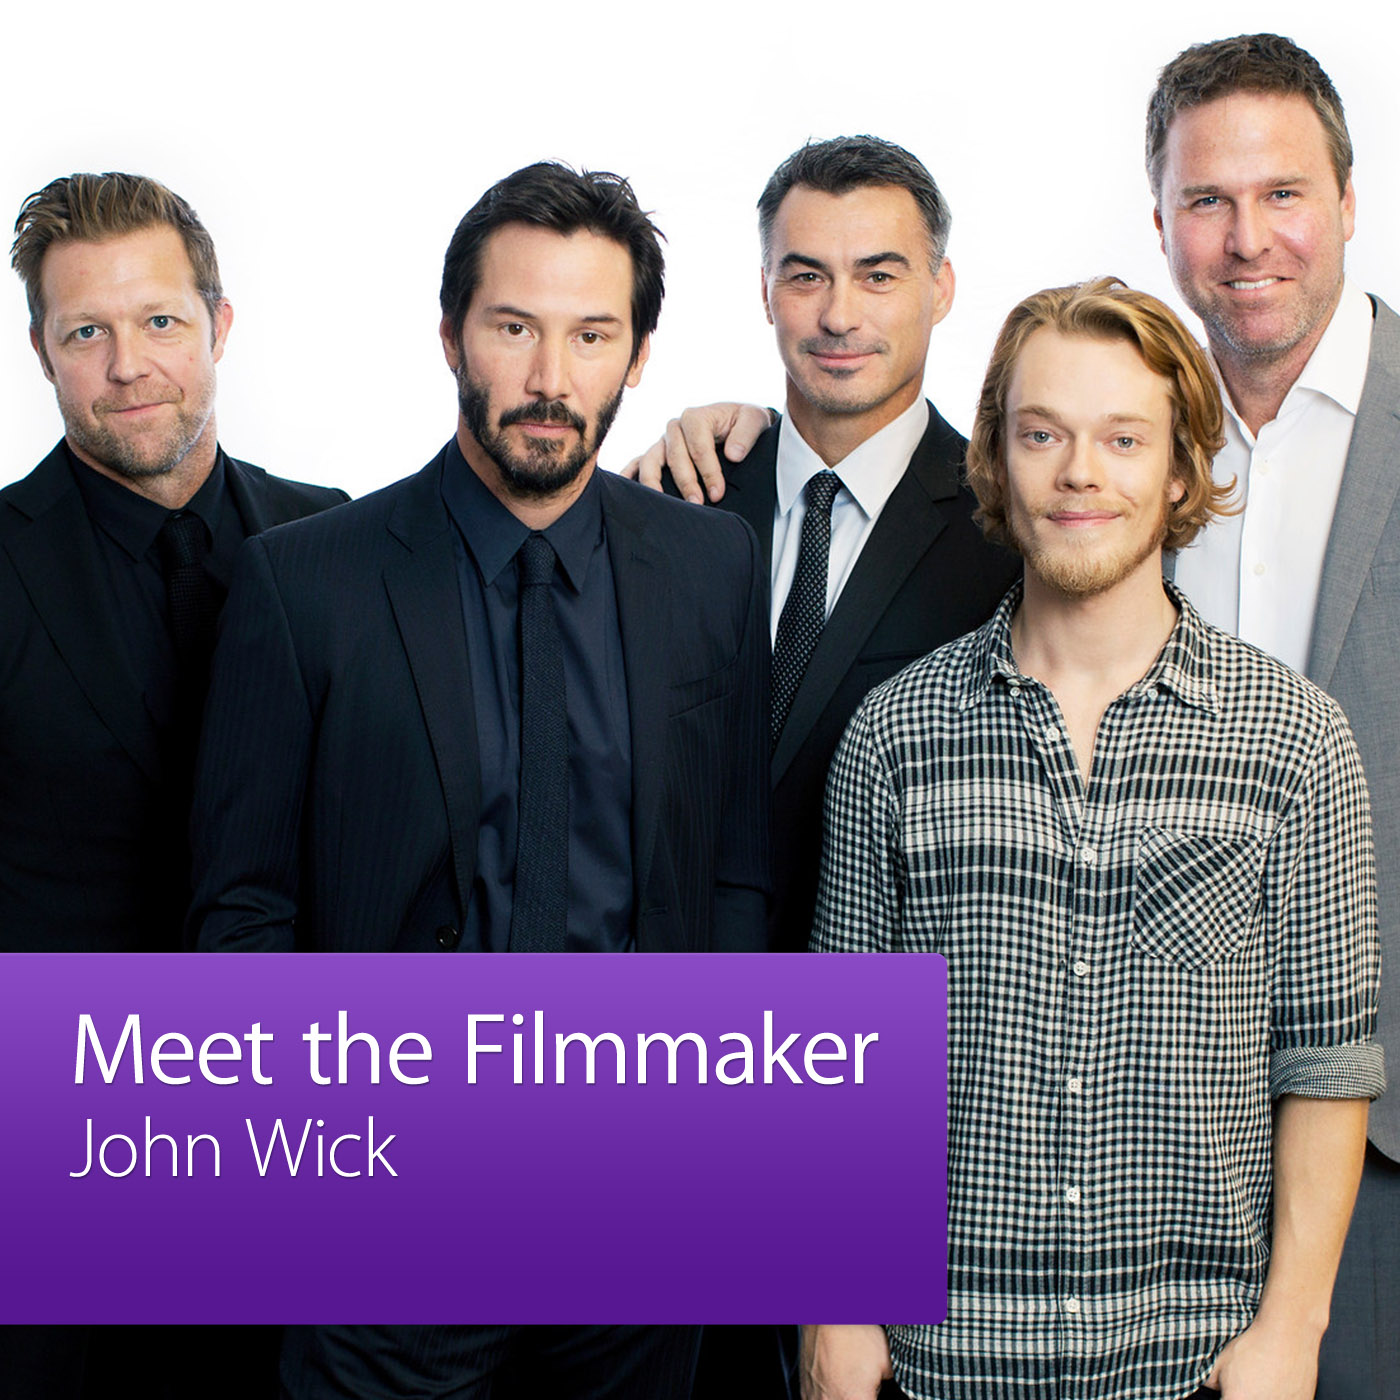 John Wick: Meet the Filmmaker